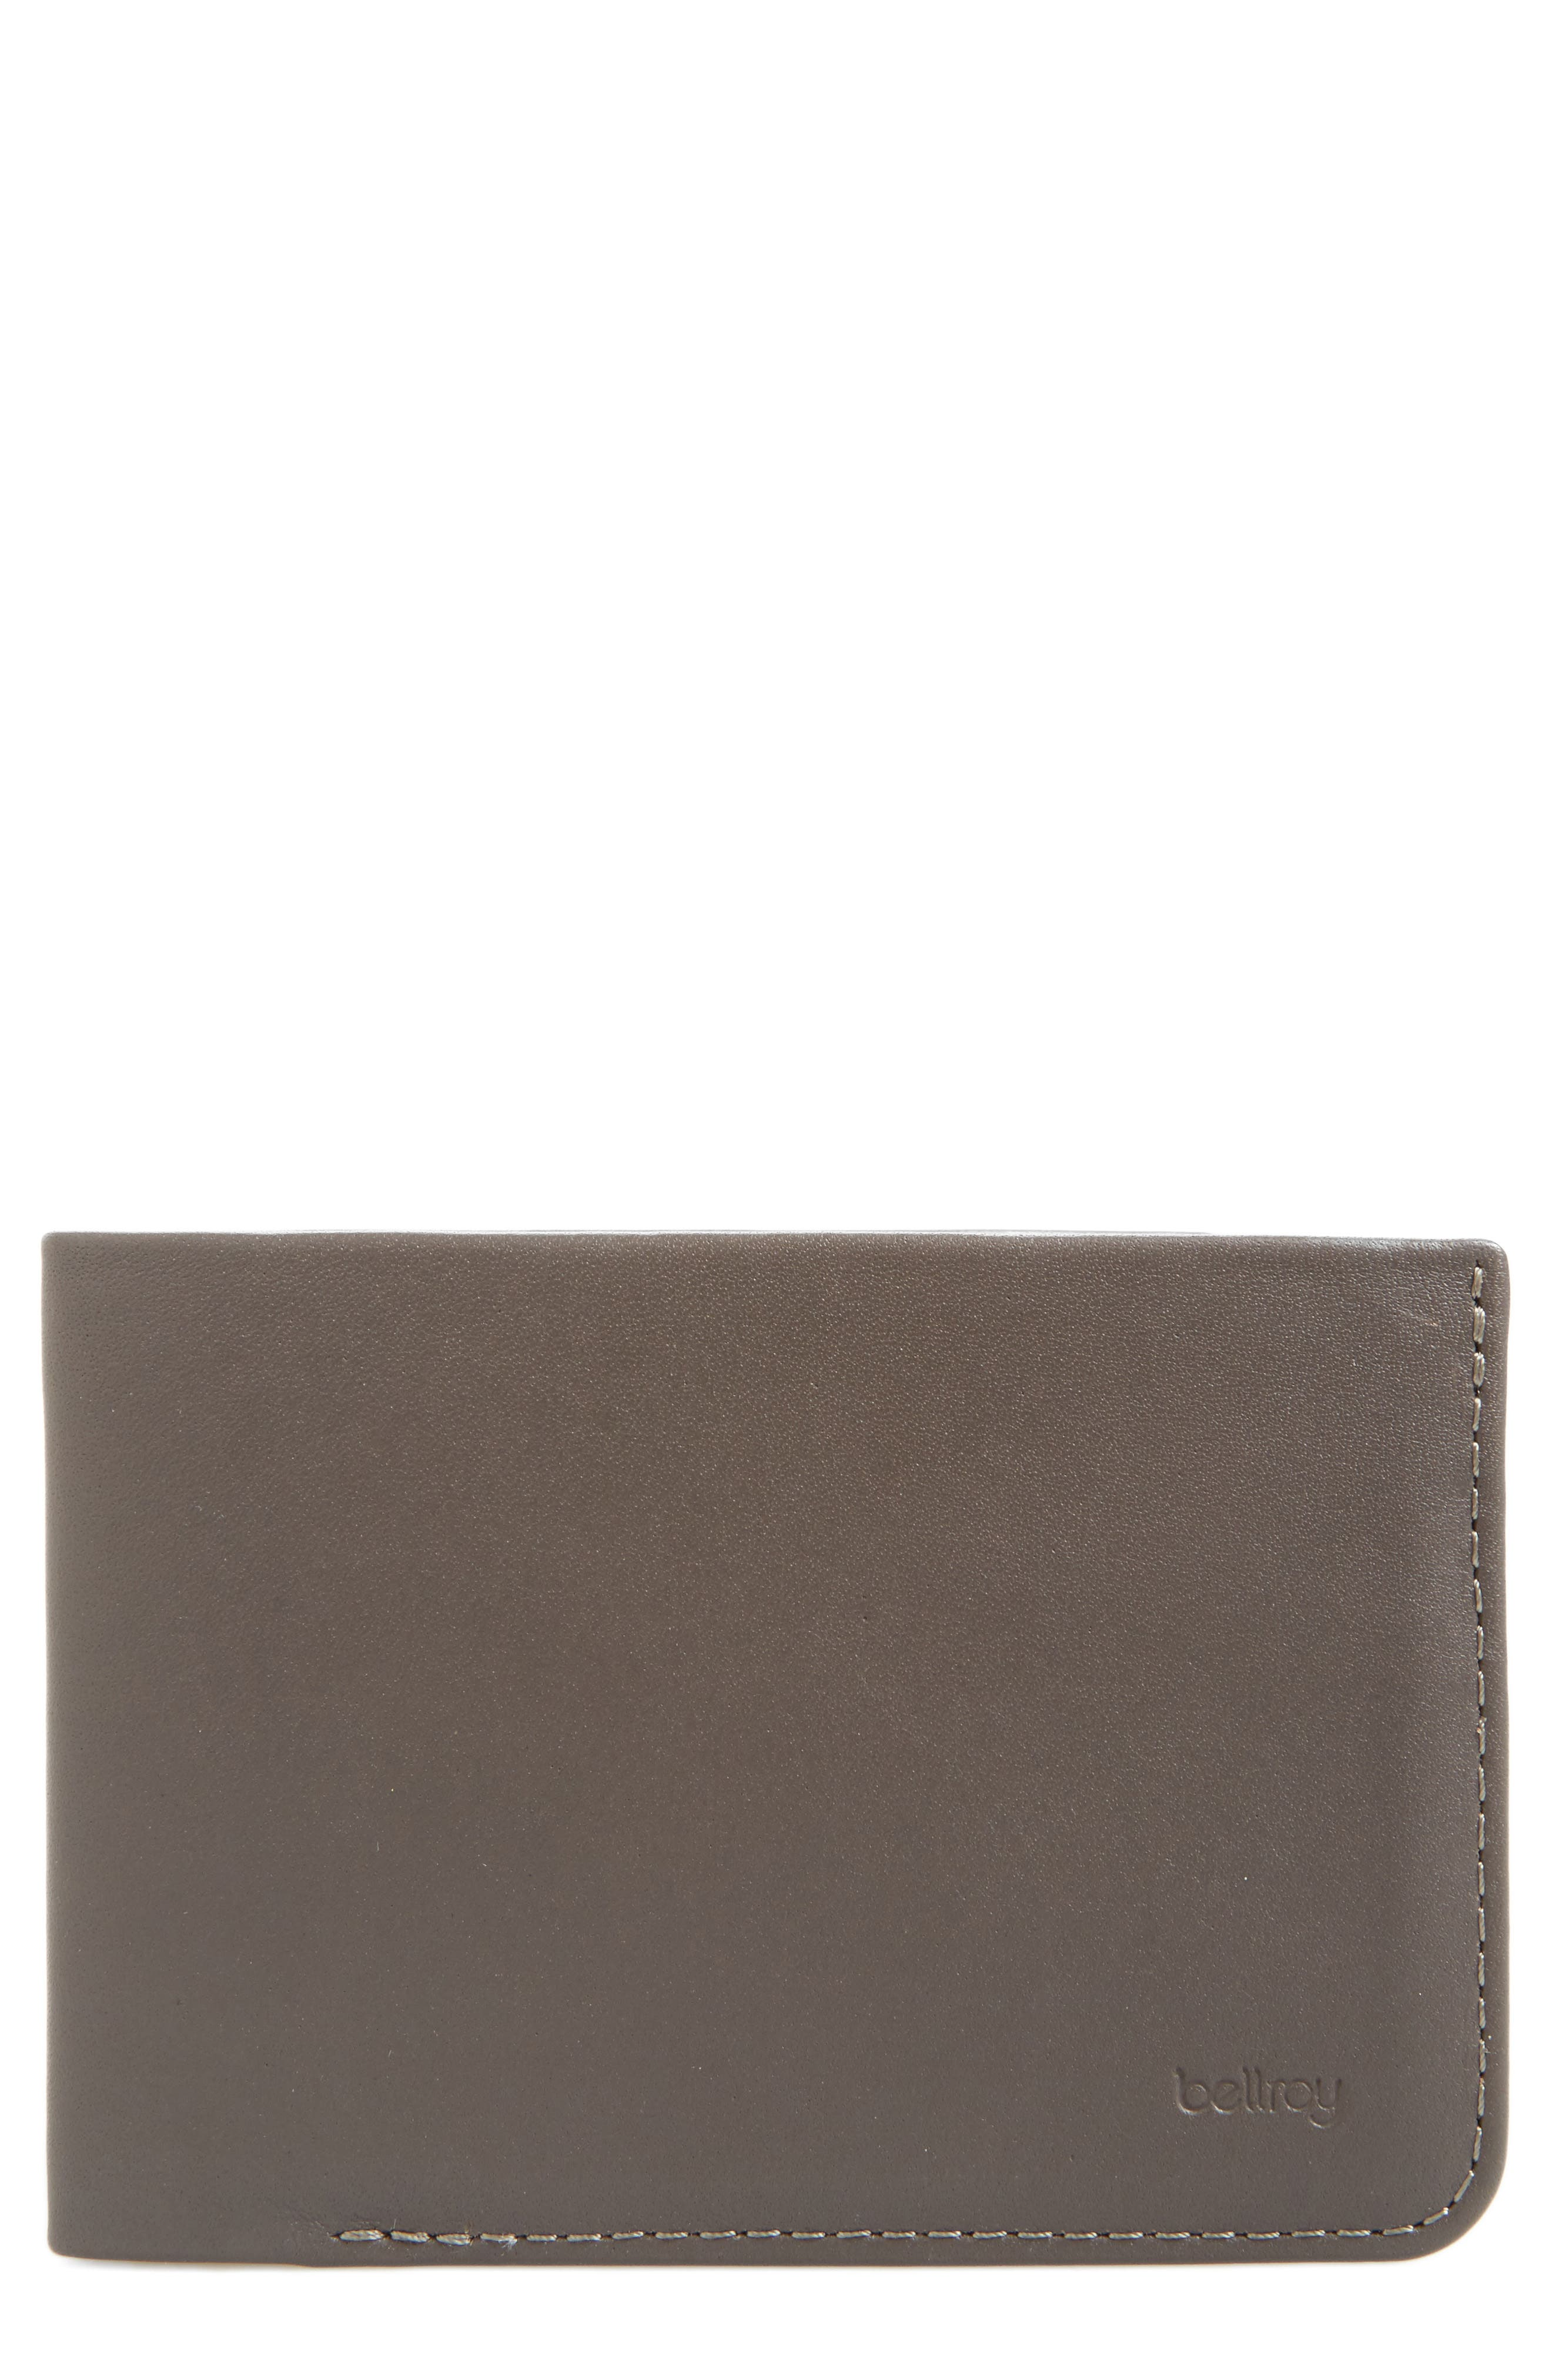 Low Down Leather Wallet,                             Main thumbnail 1, color,                             Charcoal